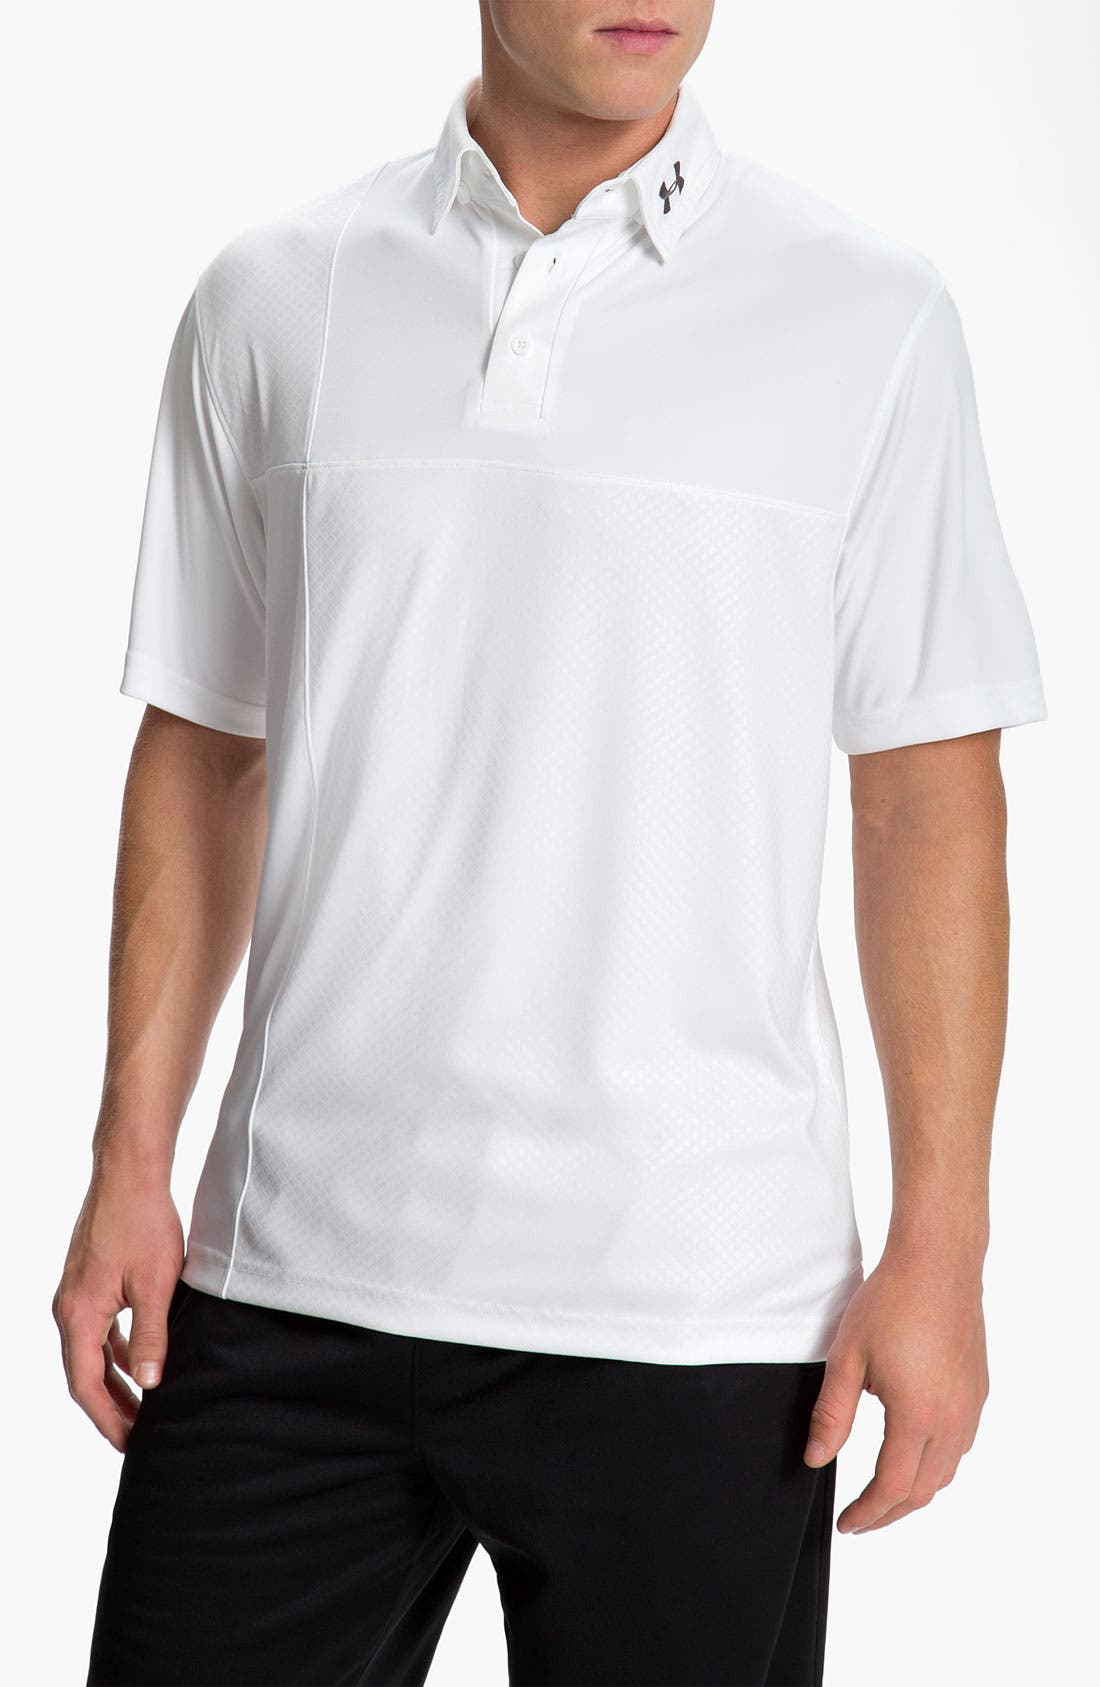 Alternate Image 1 Selected - Under Armour HeatGear® UV Protection Performance Polo